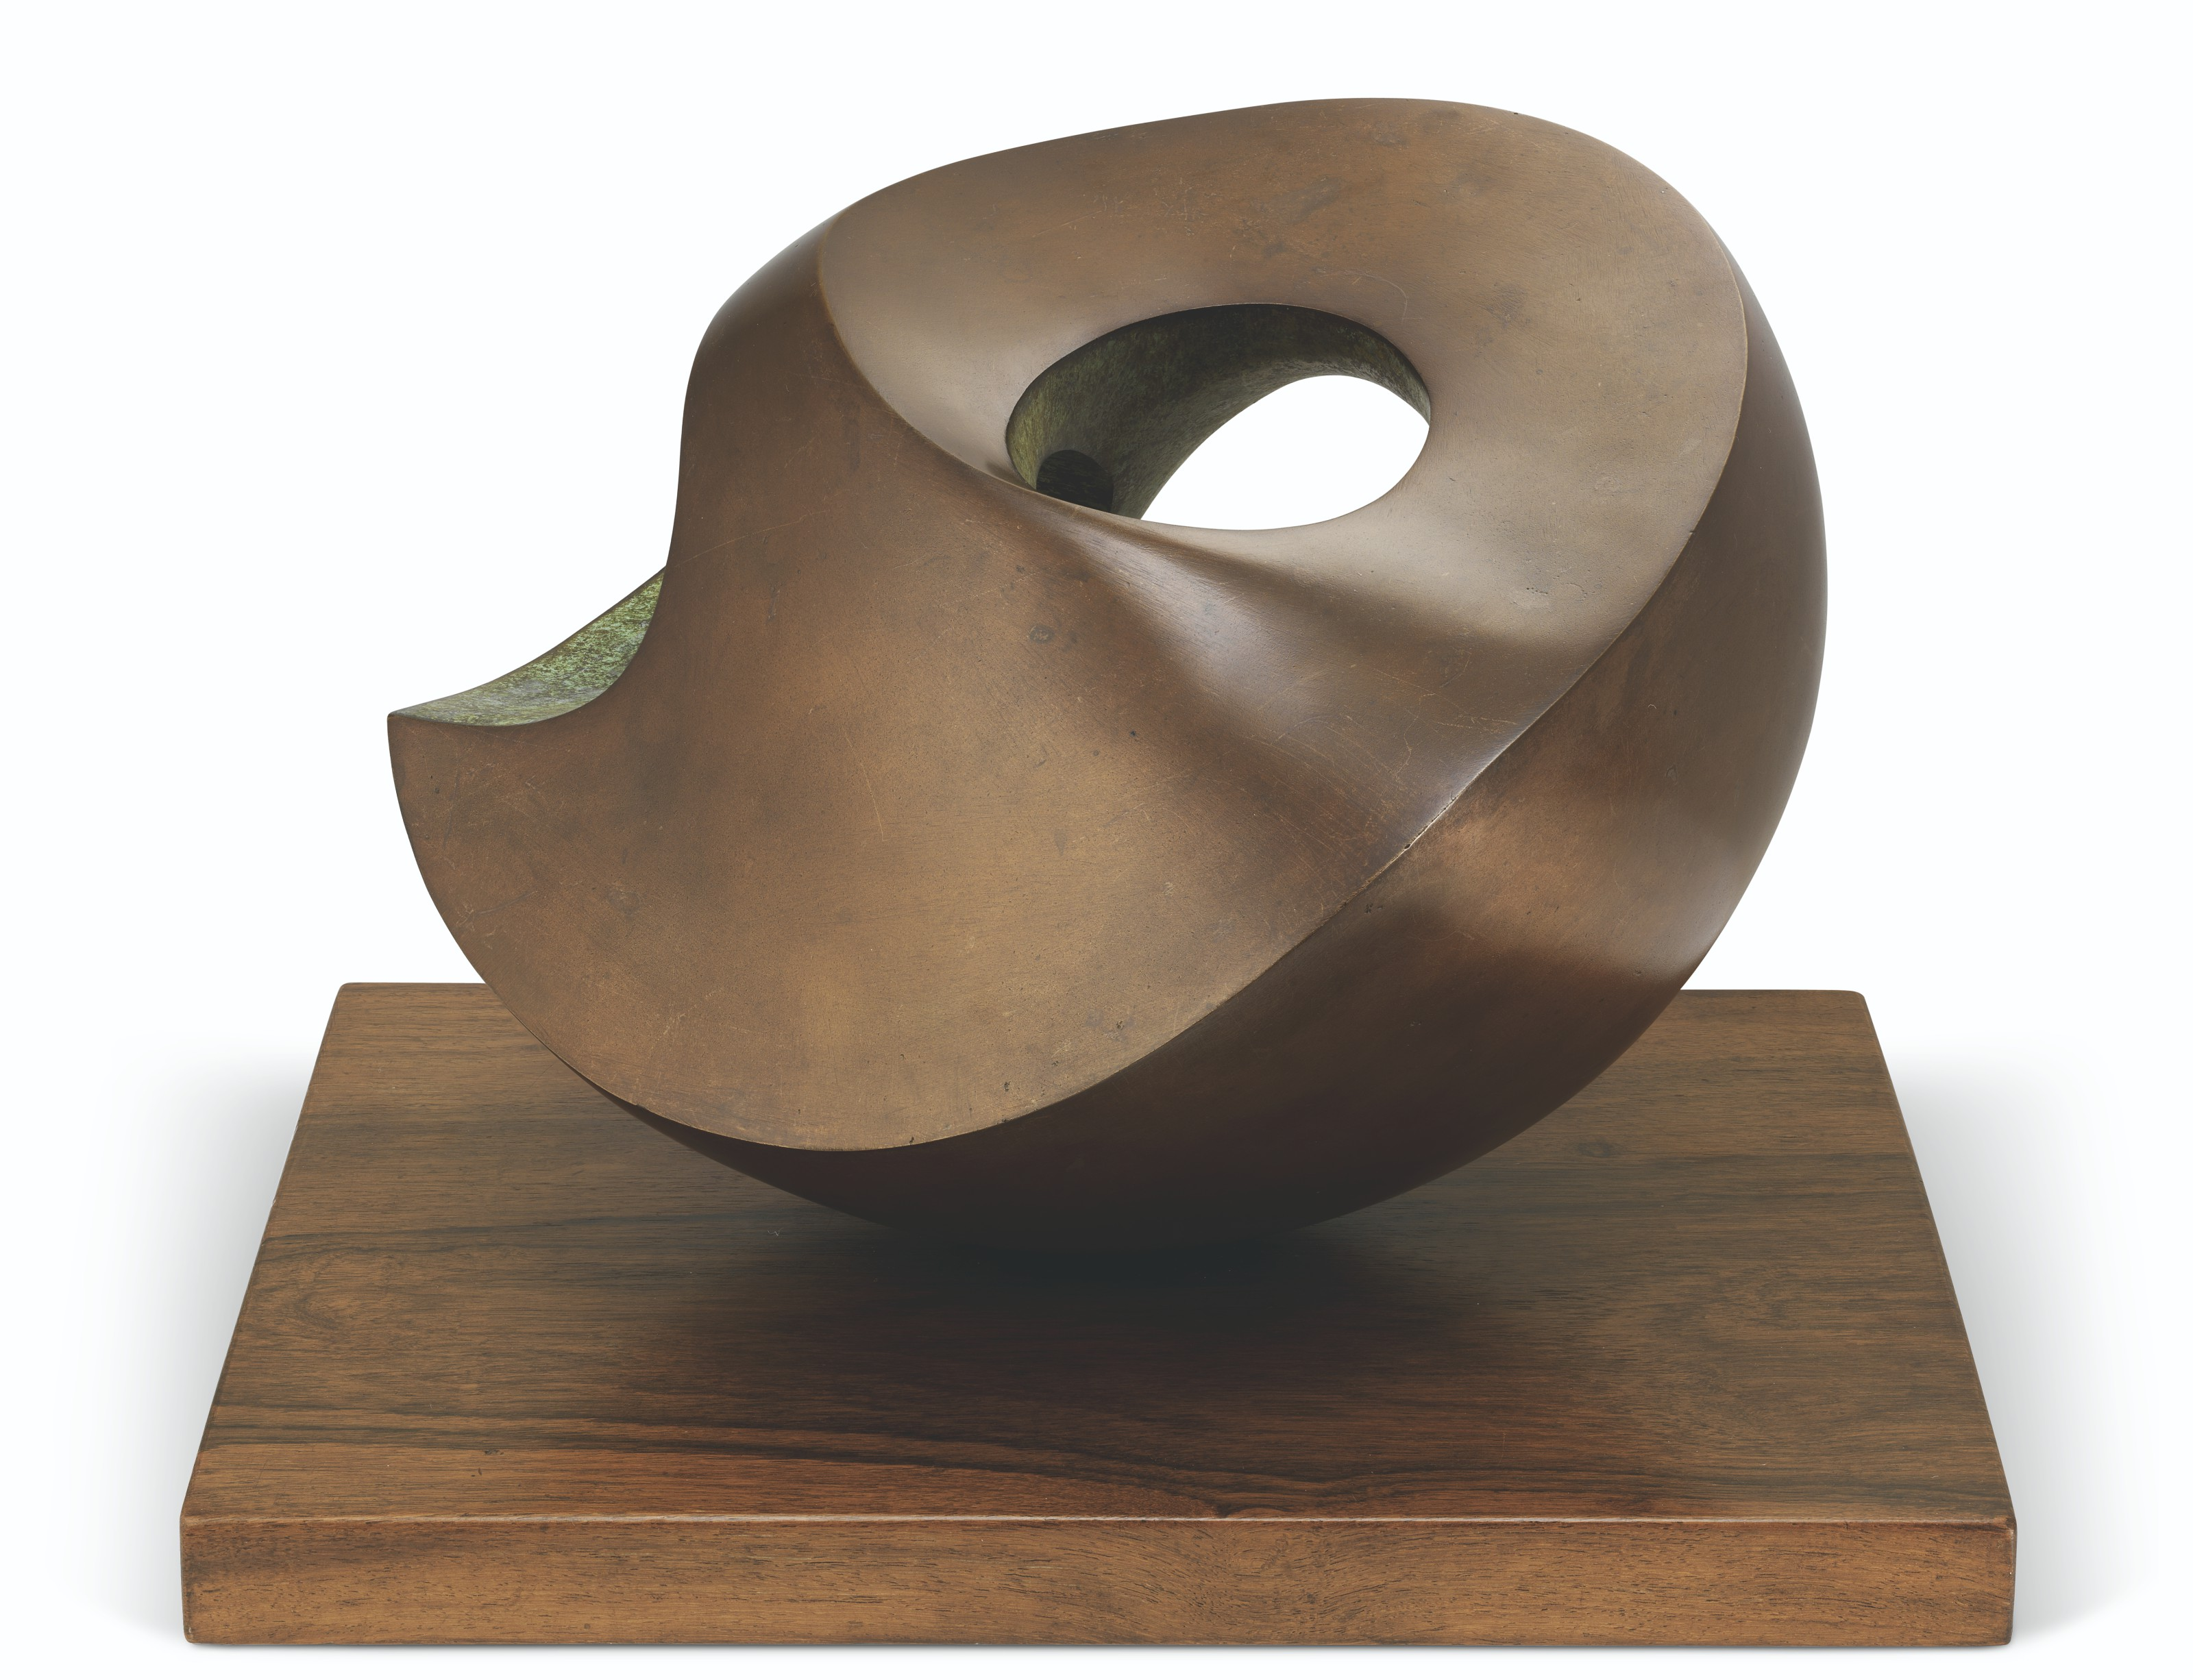 Dame Barbara Hepworth (1903-1975), Involute, 1968. Bronze with a brown and green patina, on a hardwood base. 9⅞  in (25.1  cm) wide, excluding the base. Estimate £120,000-180,000. Offered in Modern British and Irish Art Evening Sale on 20 October 2021 at Christie's in London